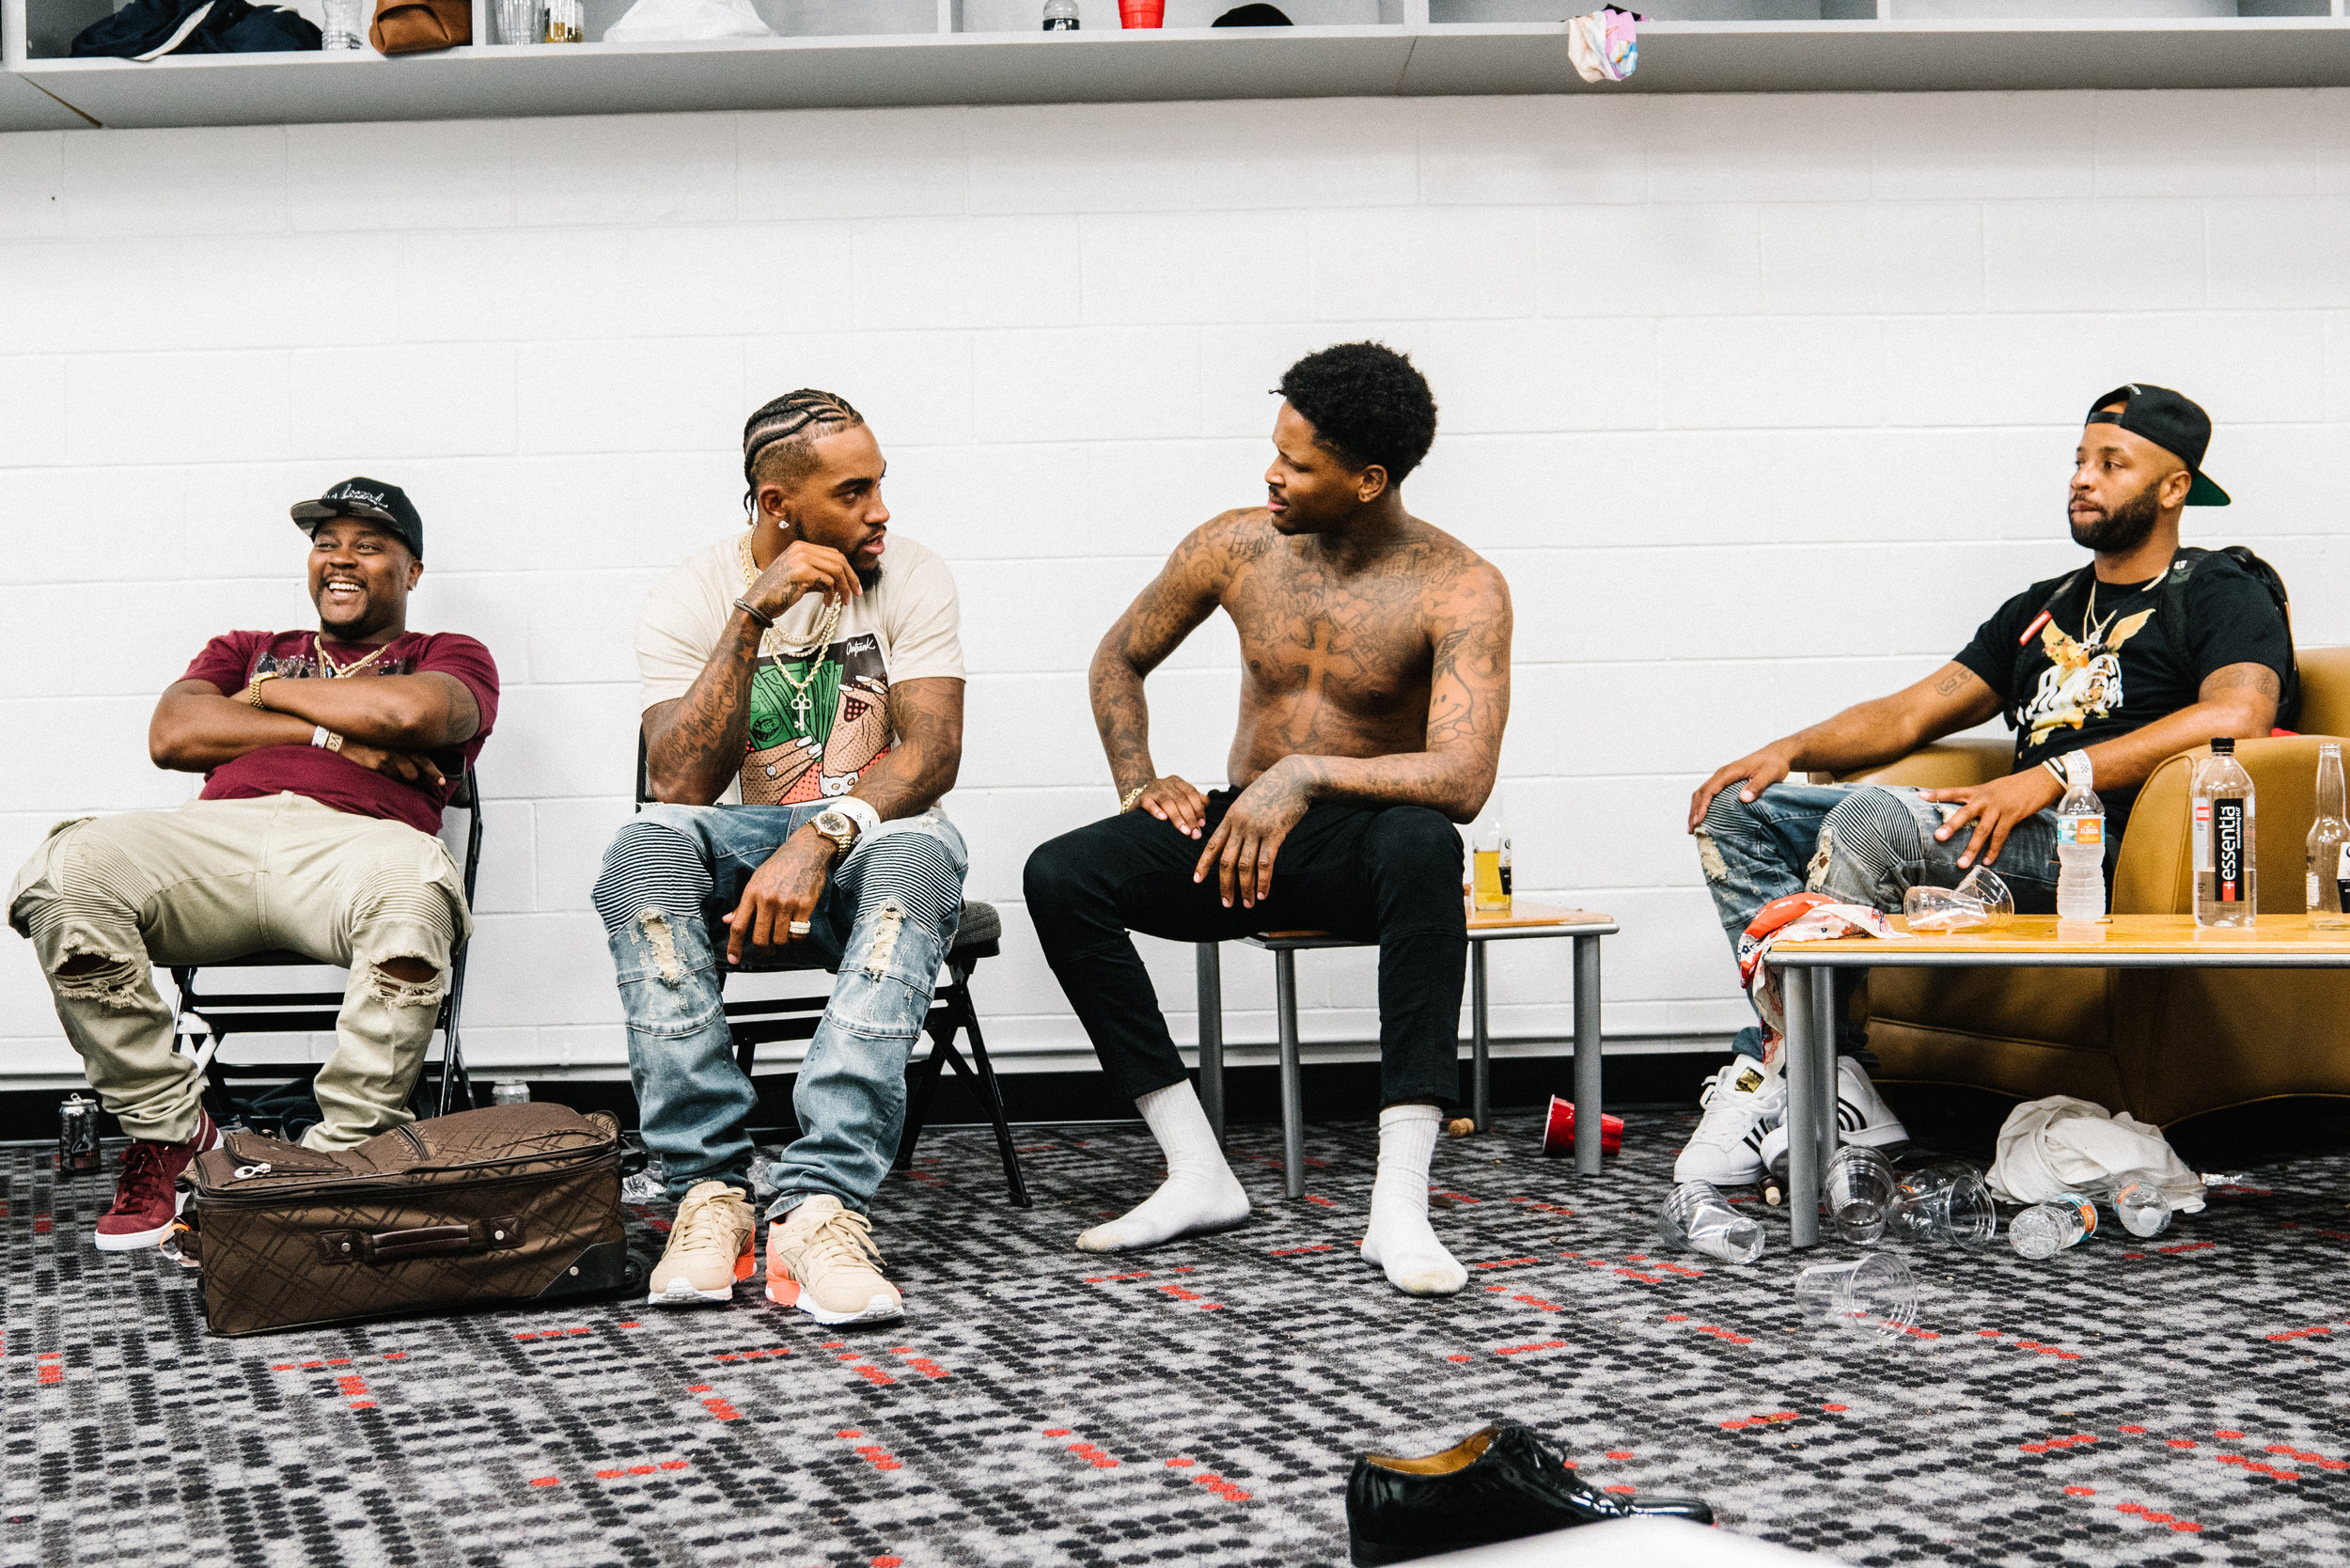 YG, Desean Jackson and friends backstage after a show in Miami, 2017